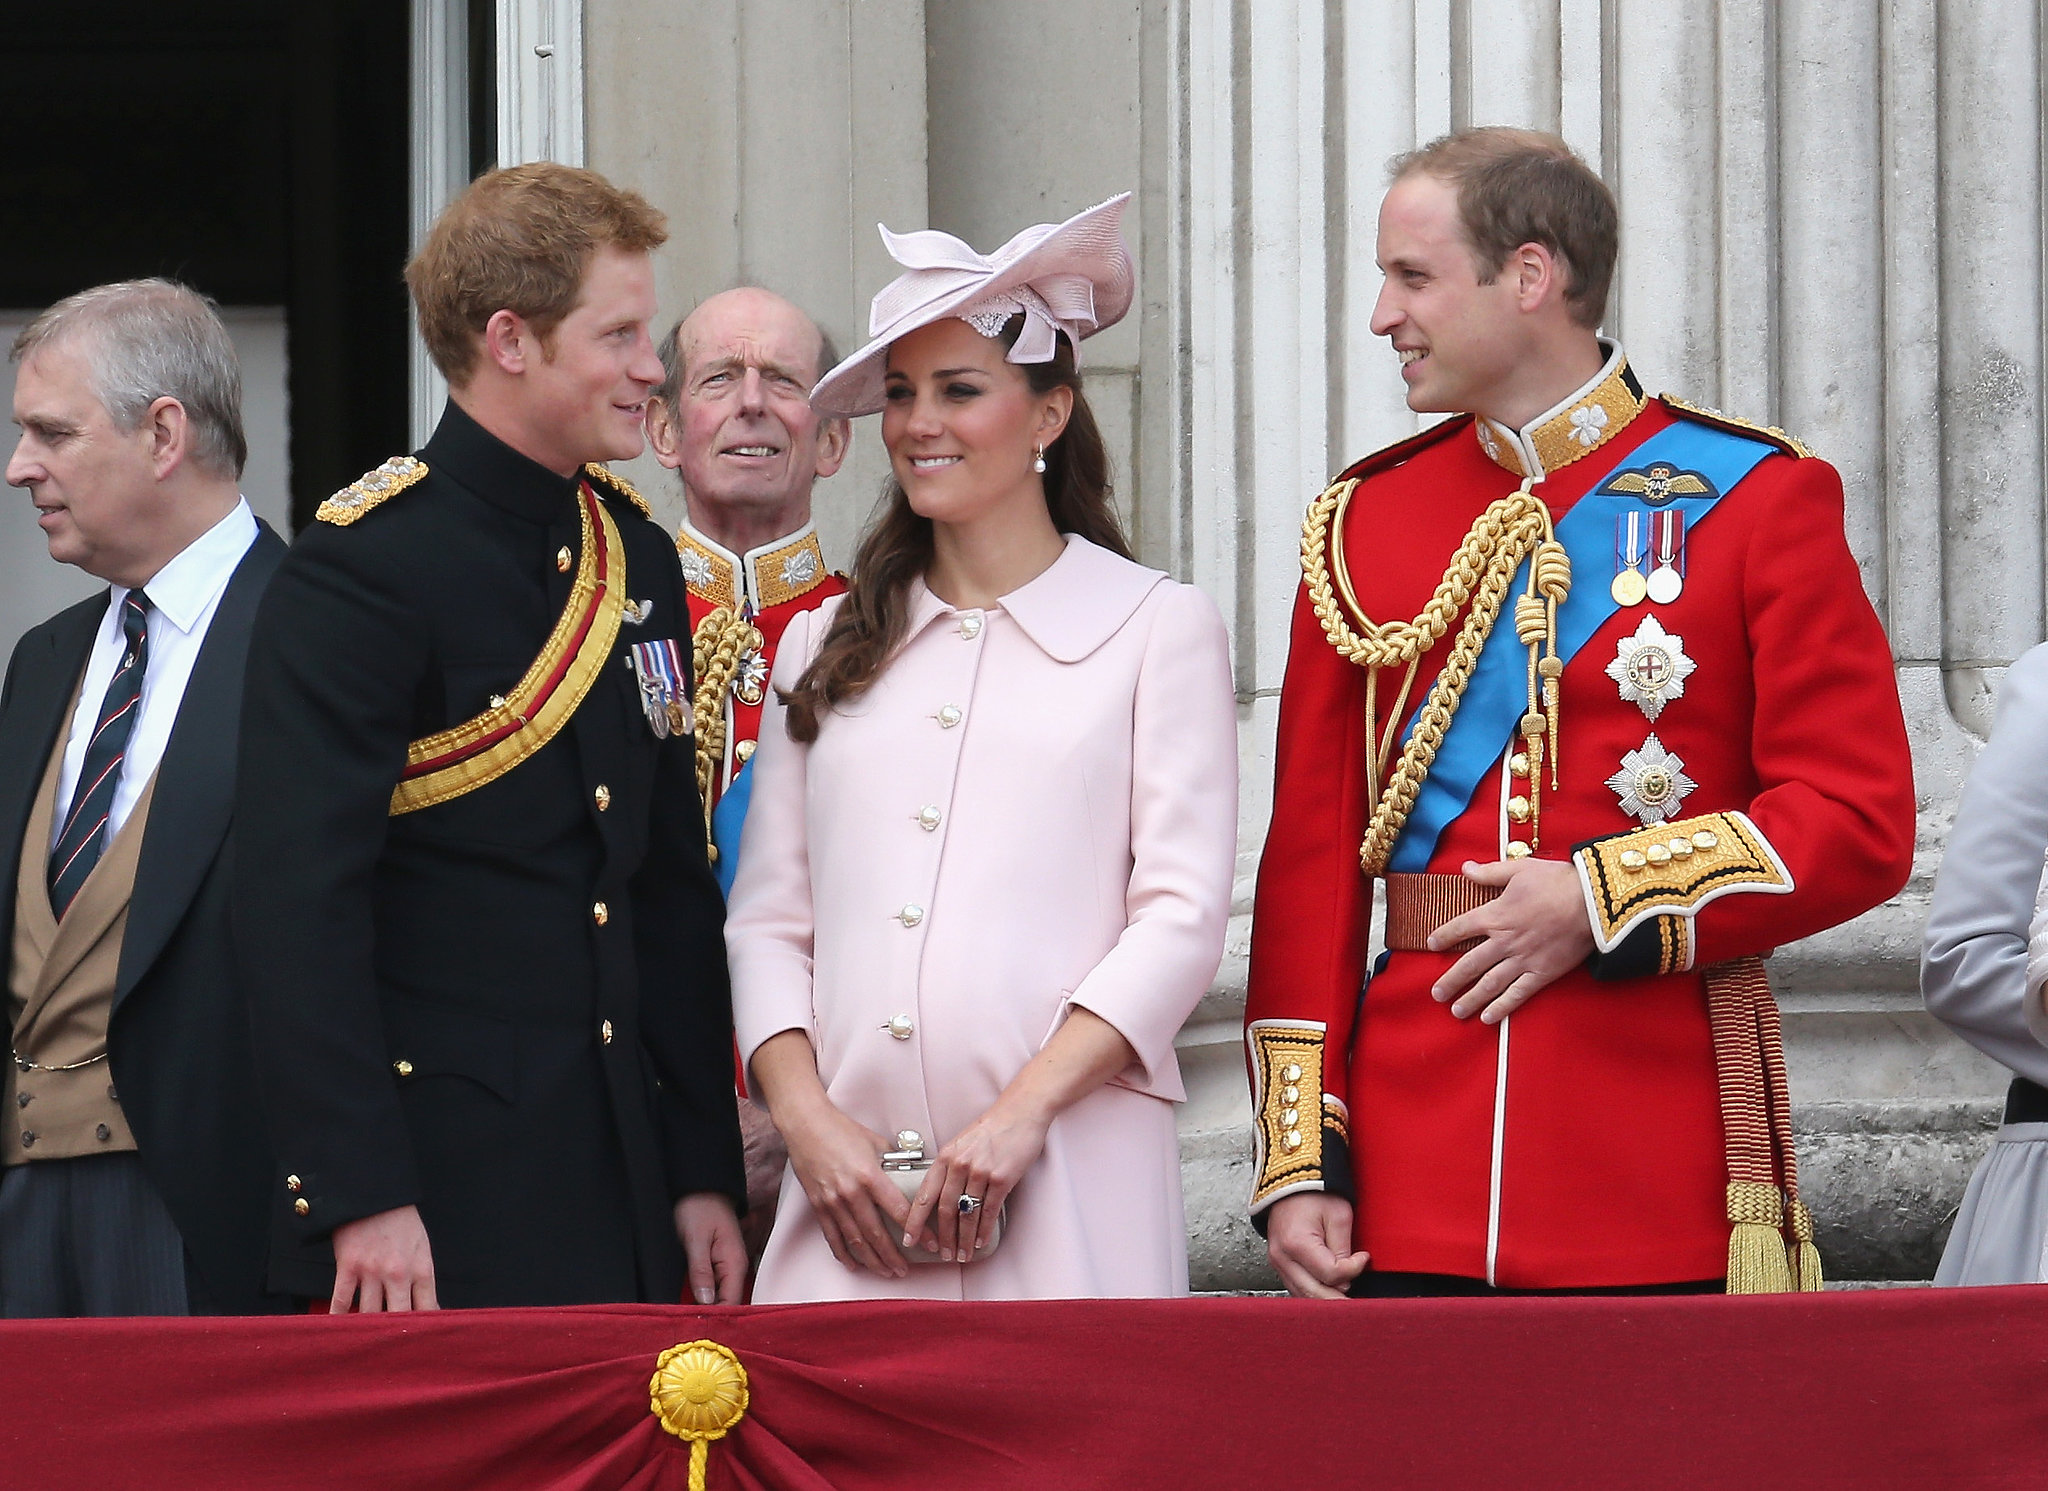 In June 2013, Kate made her final public appearance while pregnant when she attended the Trooping the Colour parade with Harry and William in London.